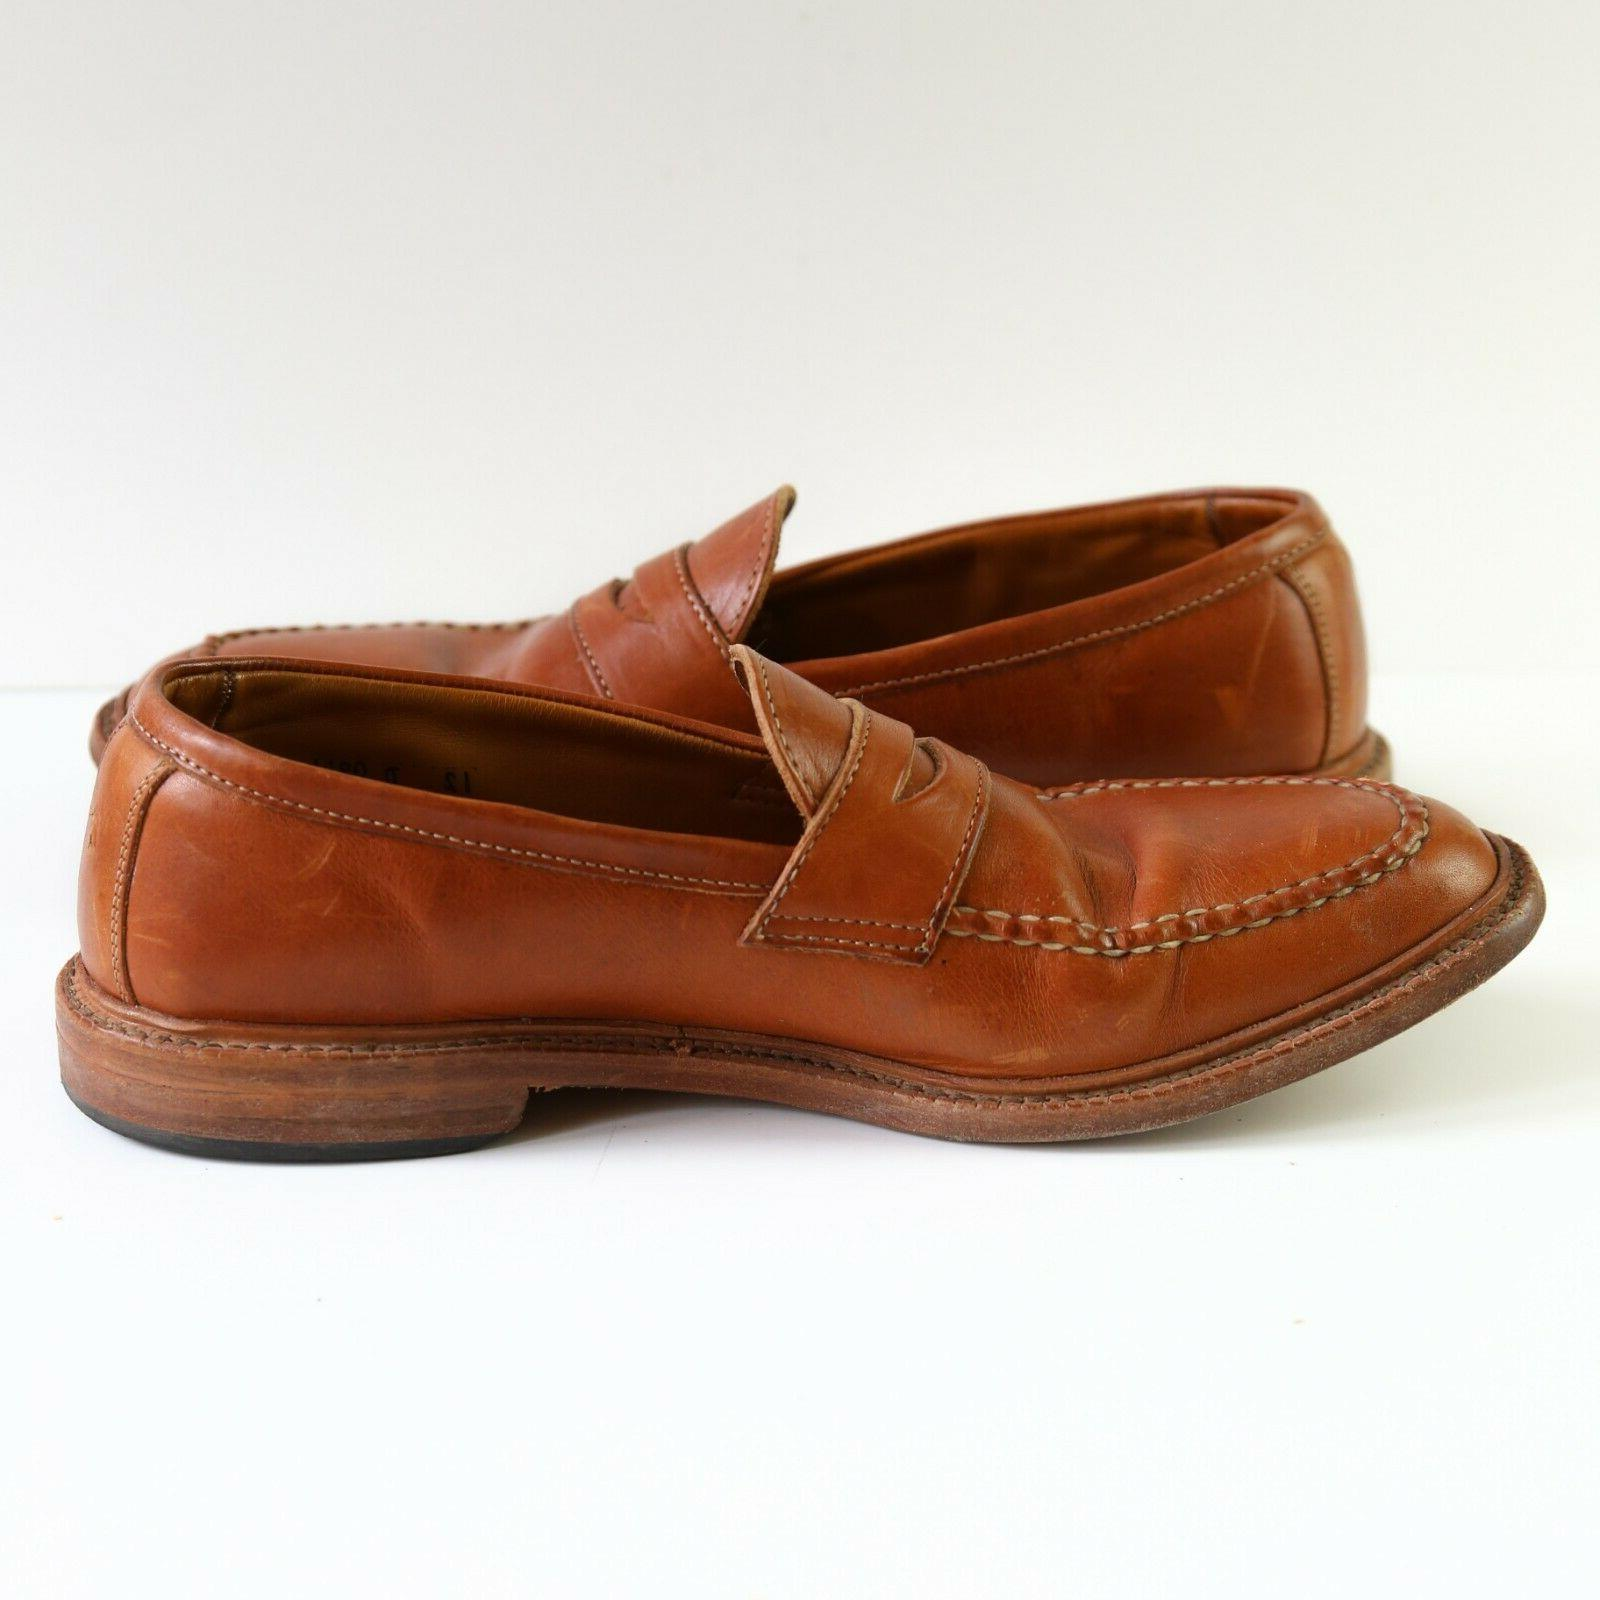 Allen Penny Size D Leather Made in